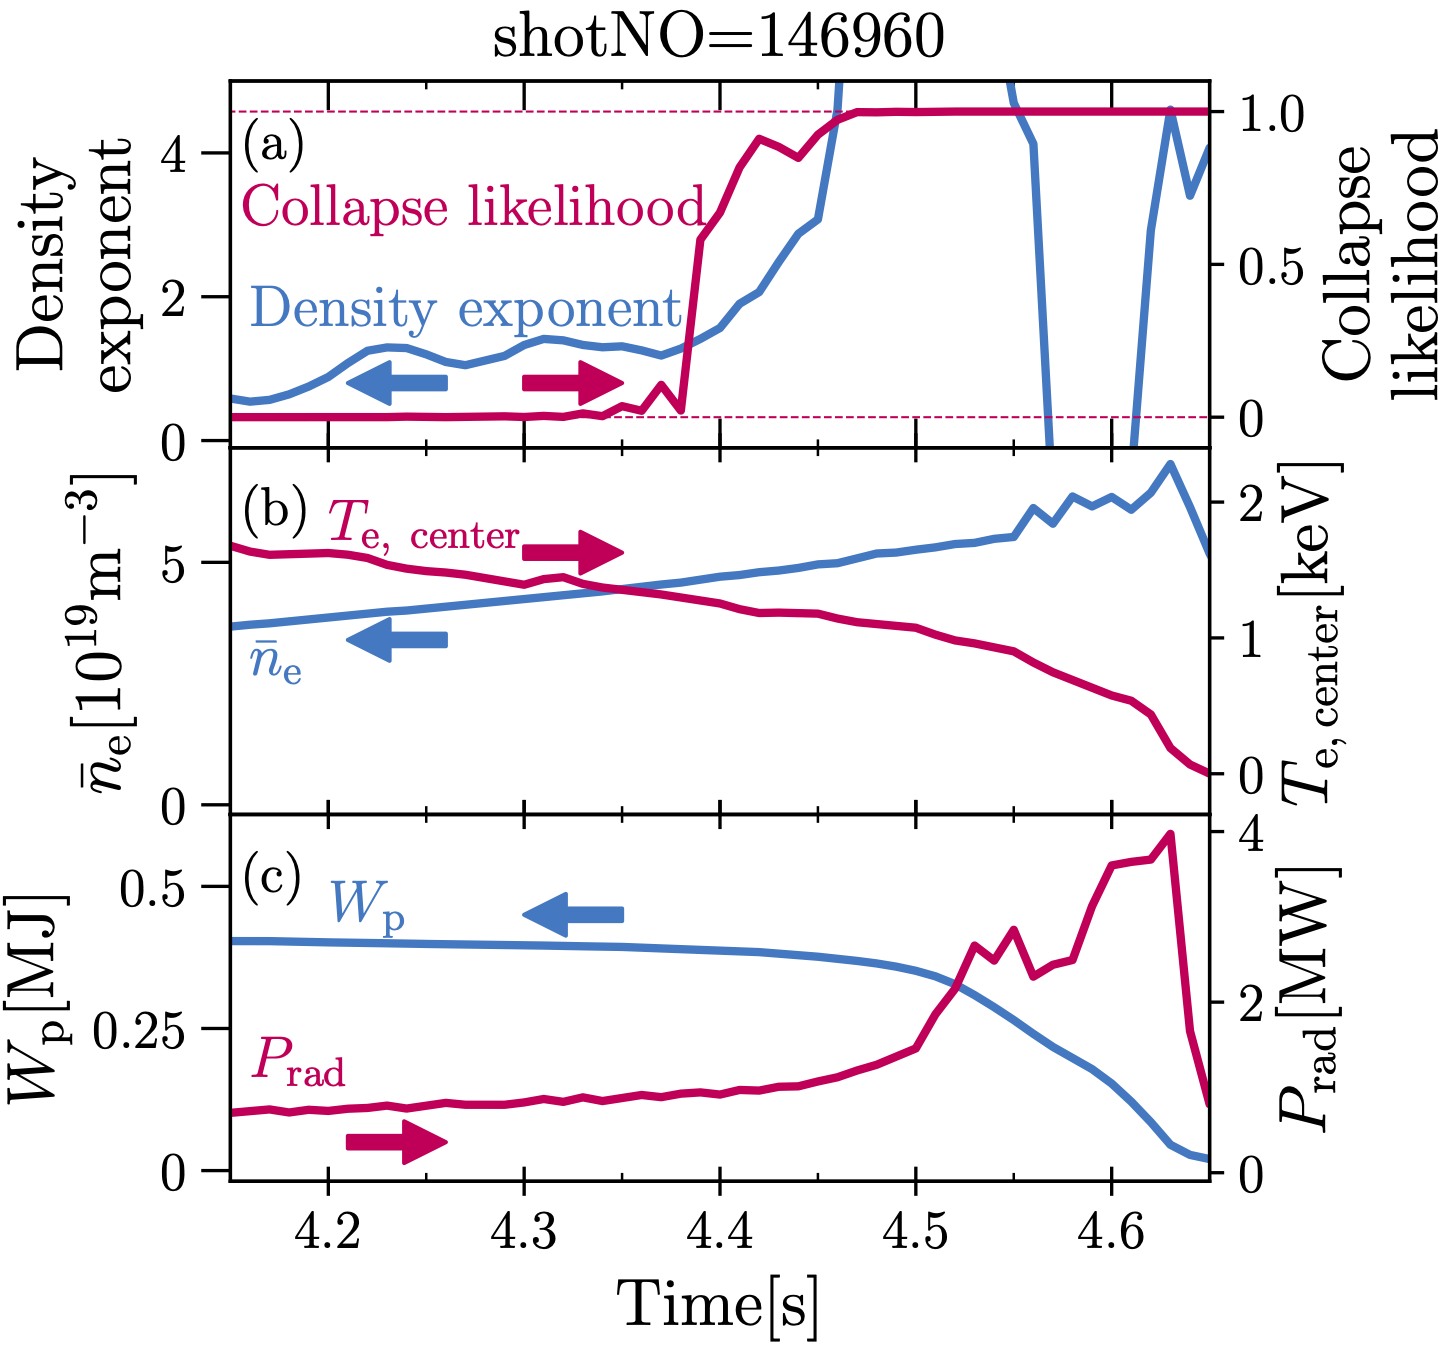 An example of collapsed discharge in LHD. (a) Density exponent and collapse likelihood, (b) line averaged electron density and electron temperature at plasma center, (c) diamagnetic energy and radiated power.